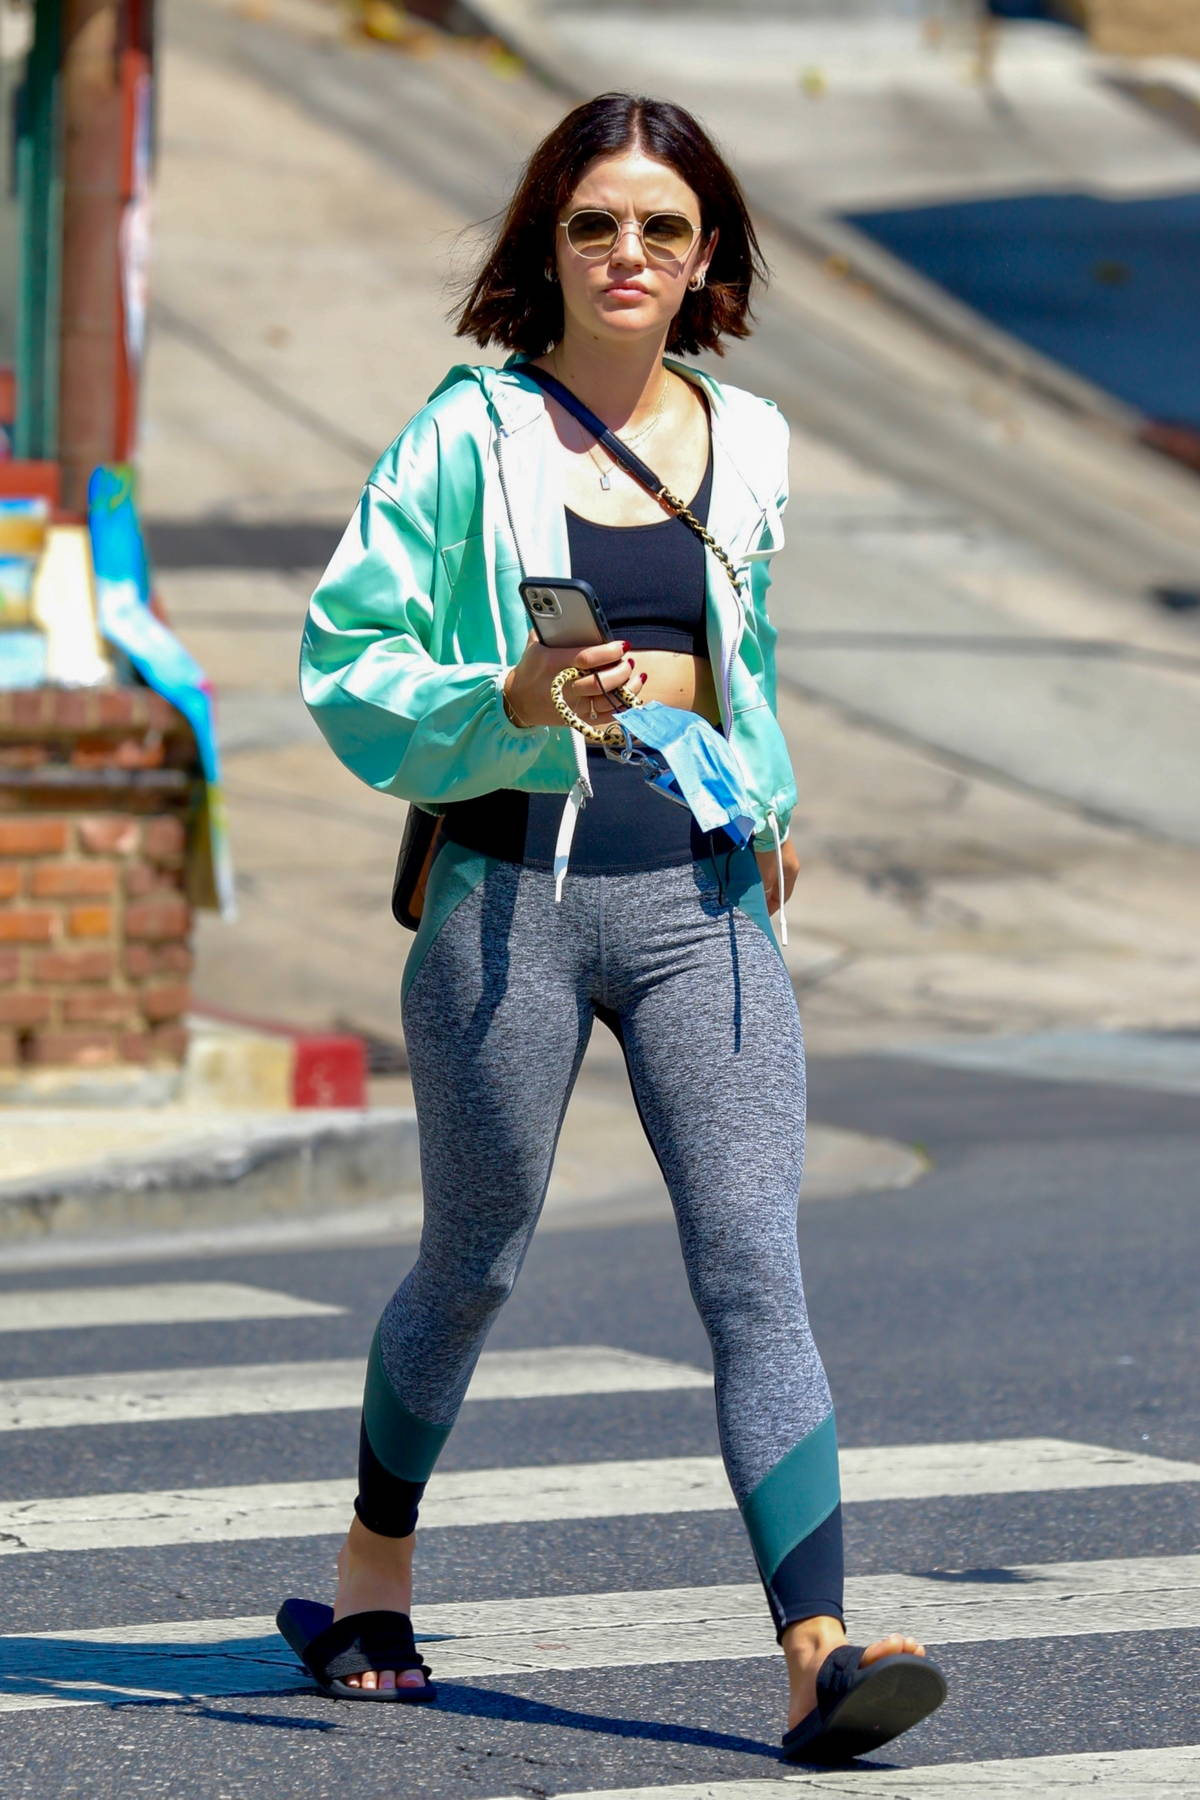 Lucy Hale shows off her taut abs in a sports bra and leggings while leaving Remedy on Sunset after a workout session in Los Angeles